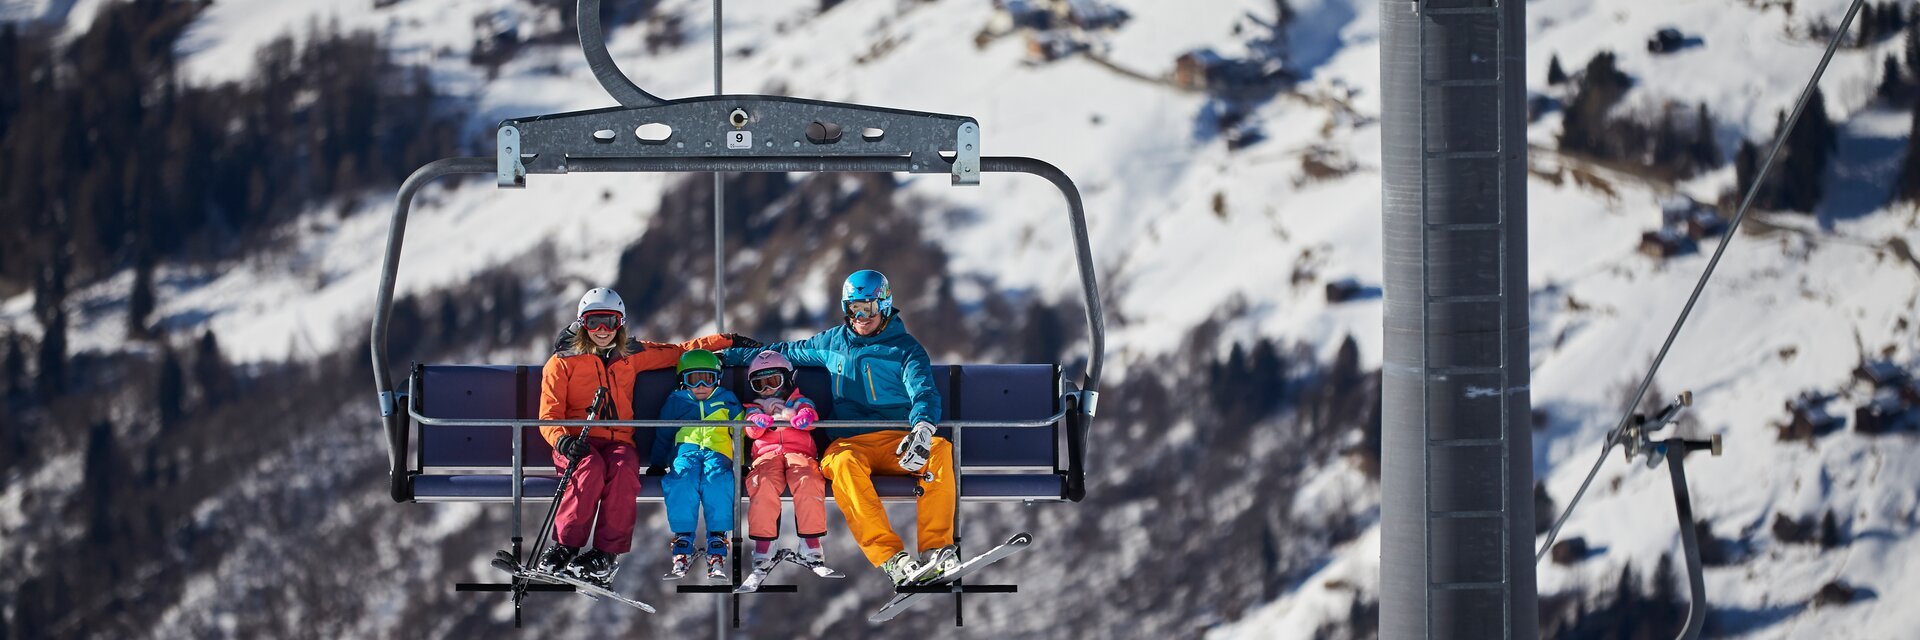 Family happily climbs up the mountain with the chairlift in the ski resort See